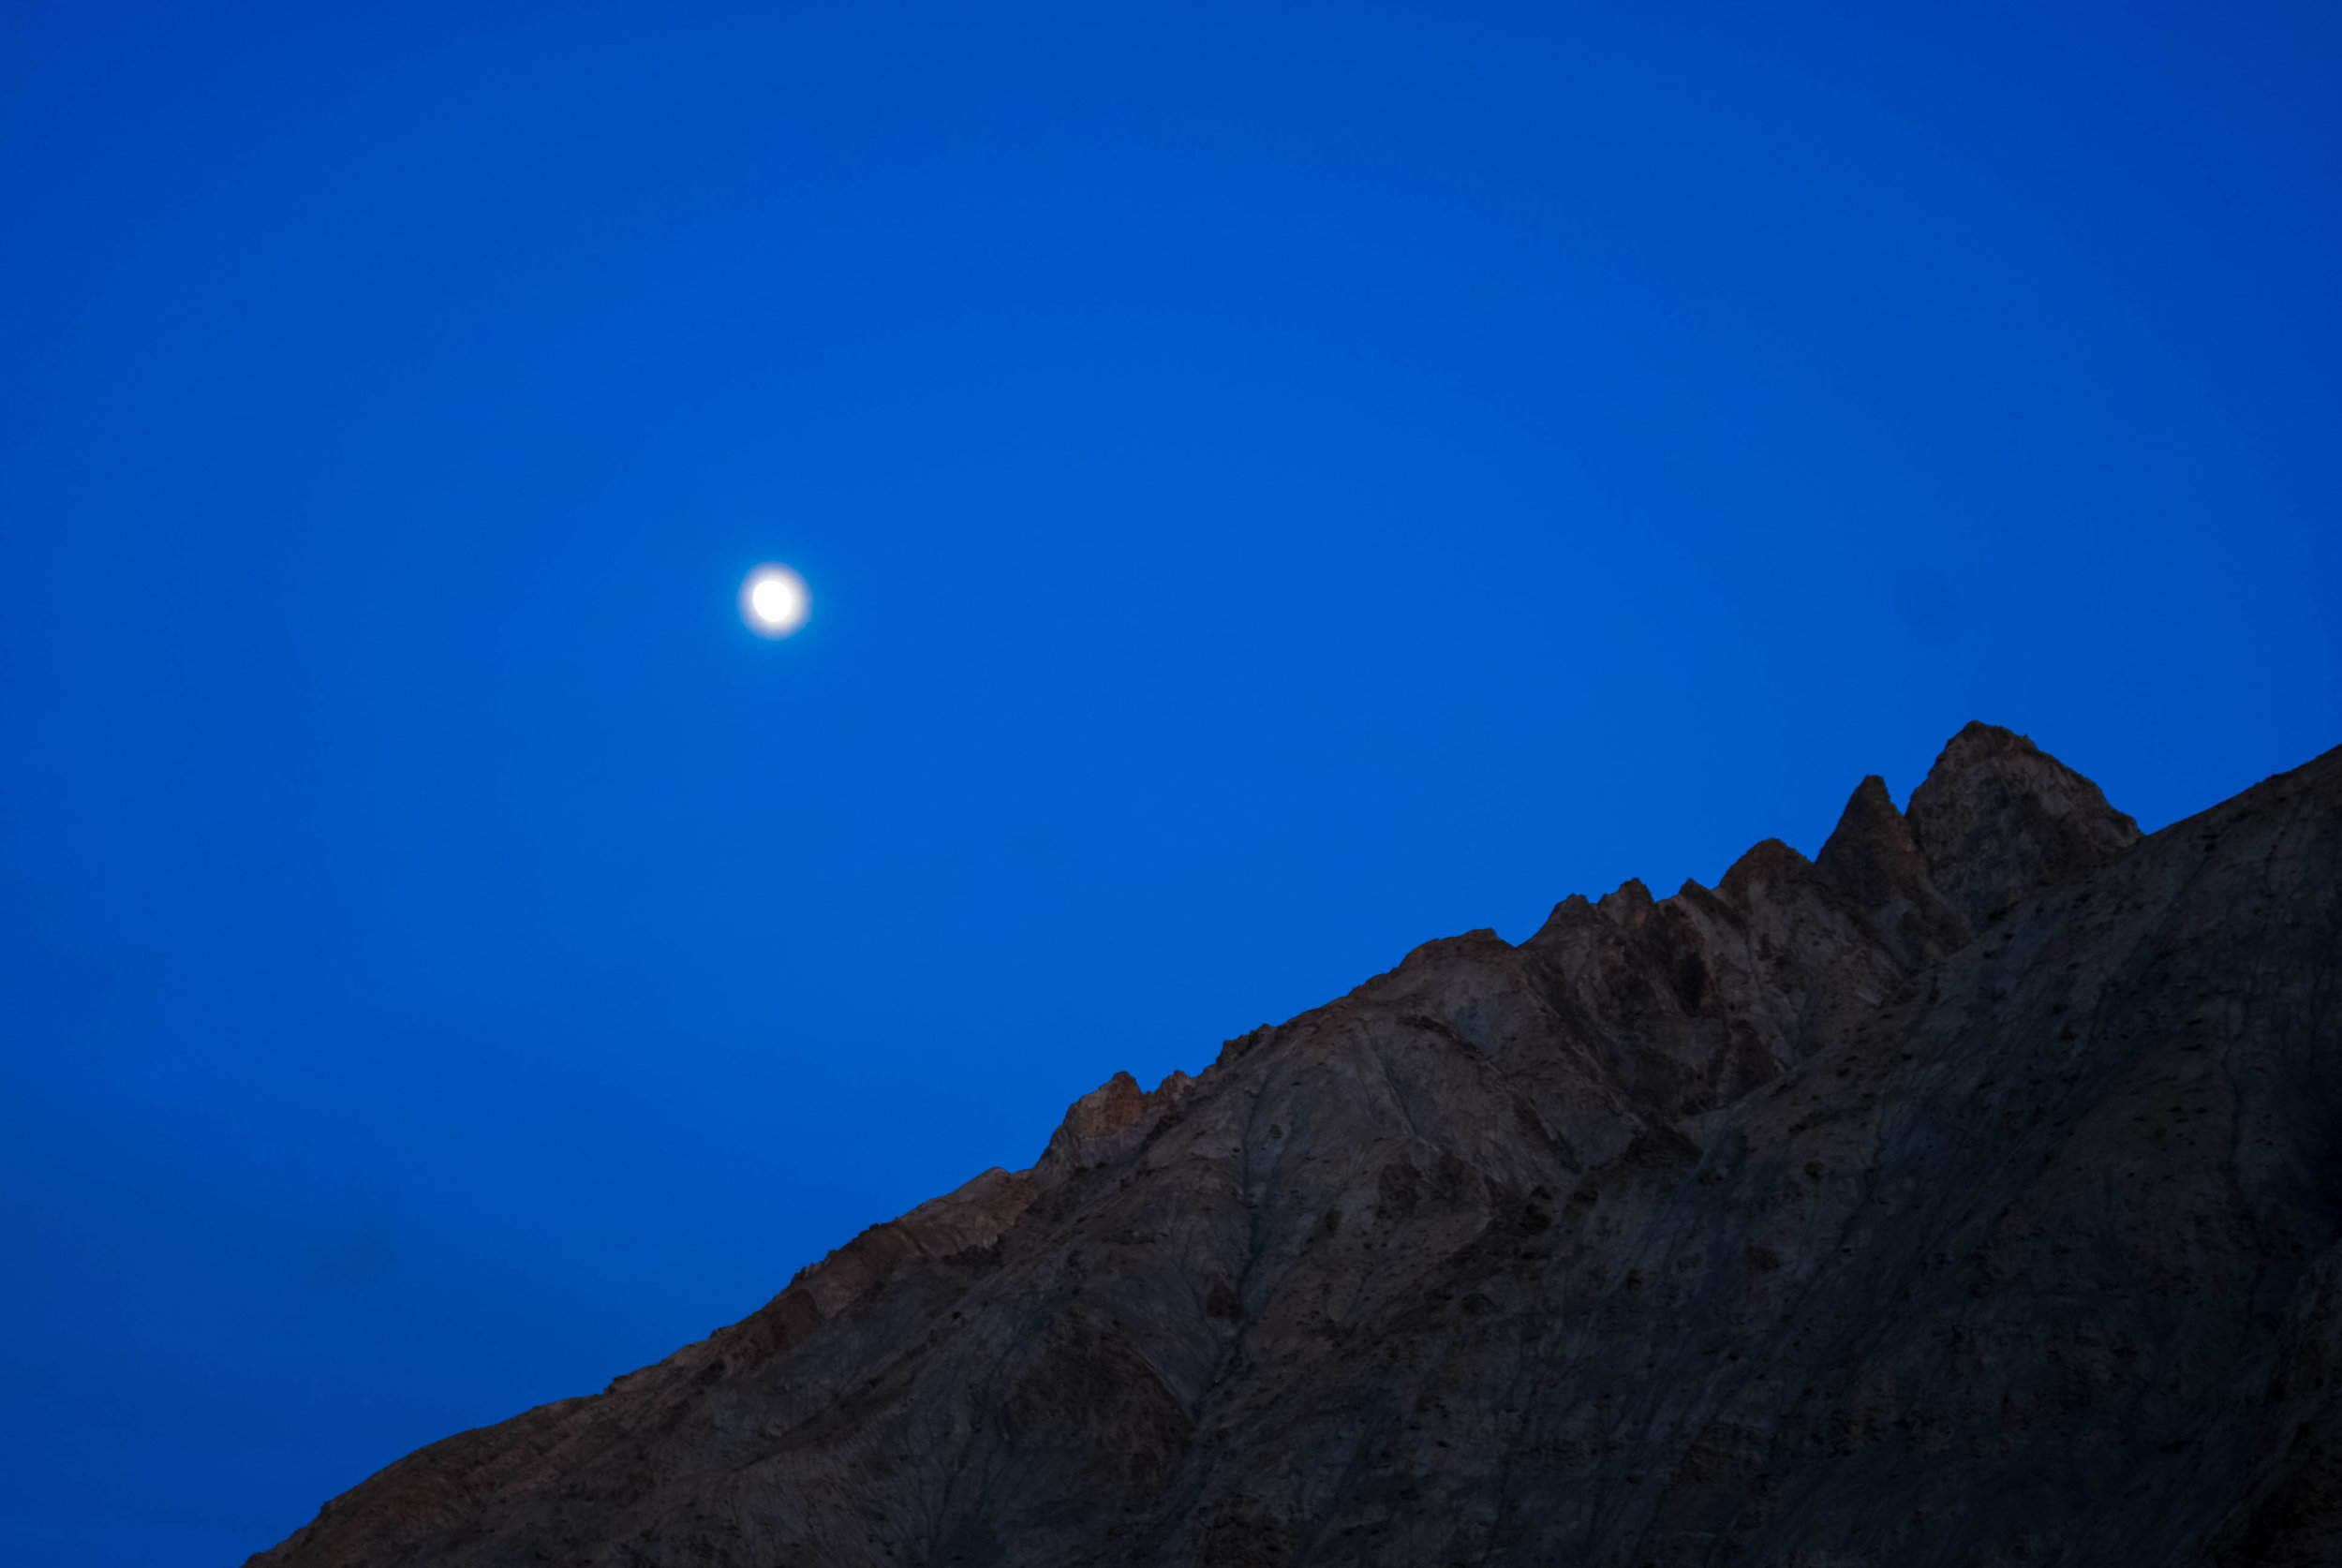 Moonrise in the Himalayas.